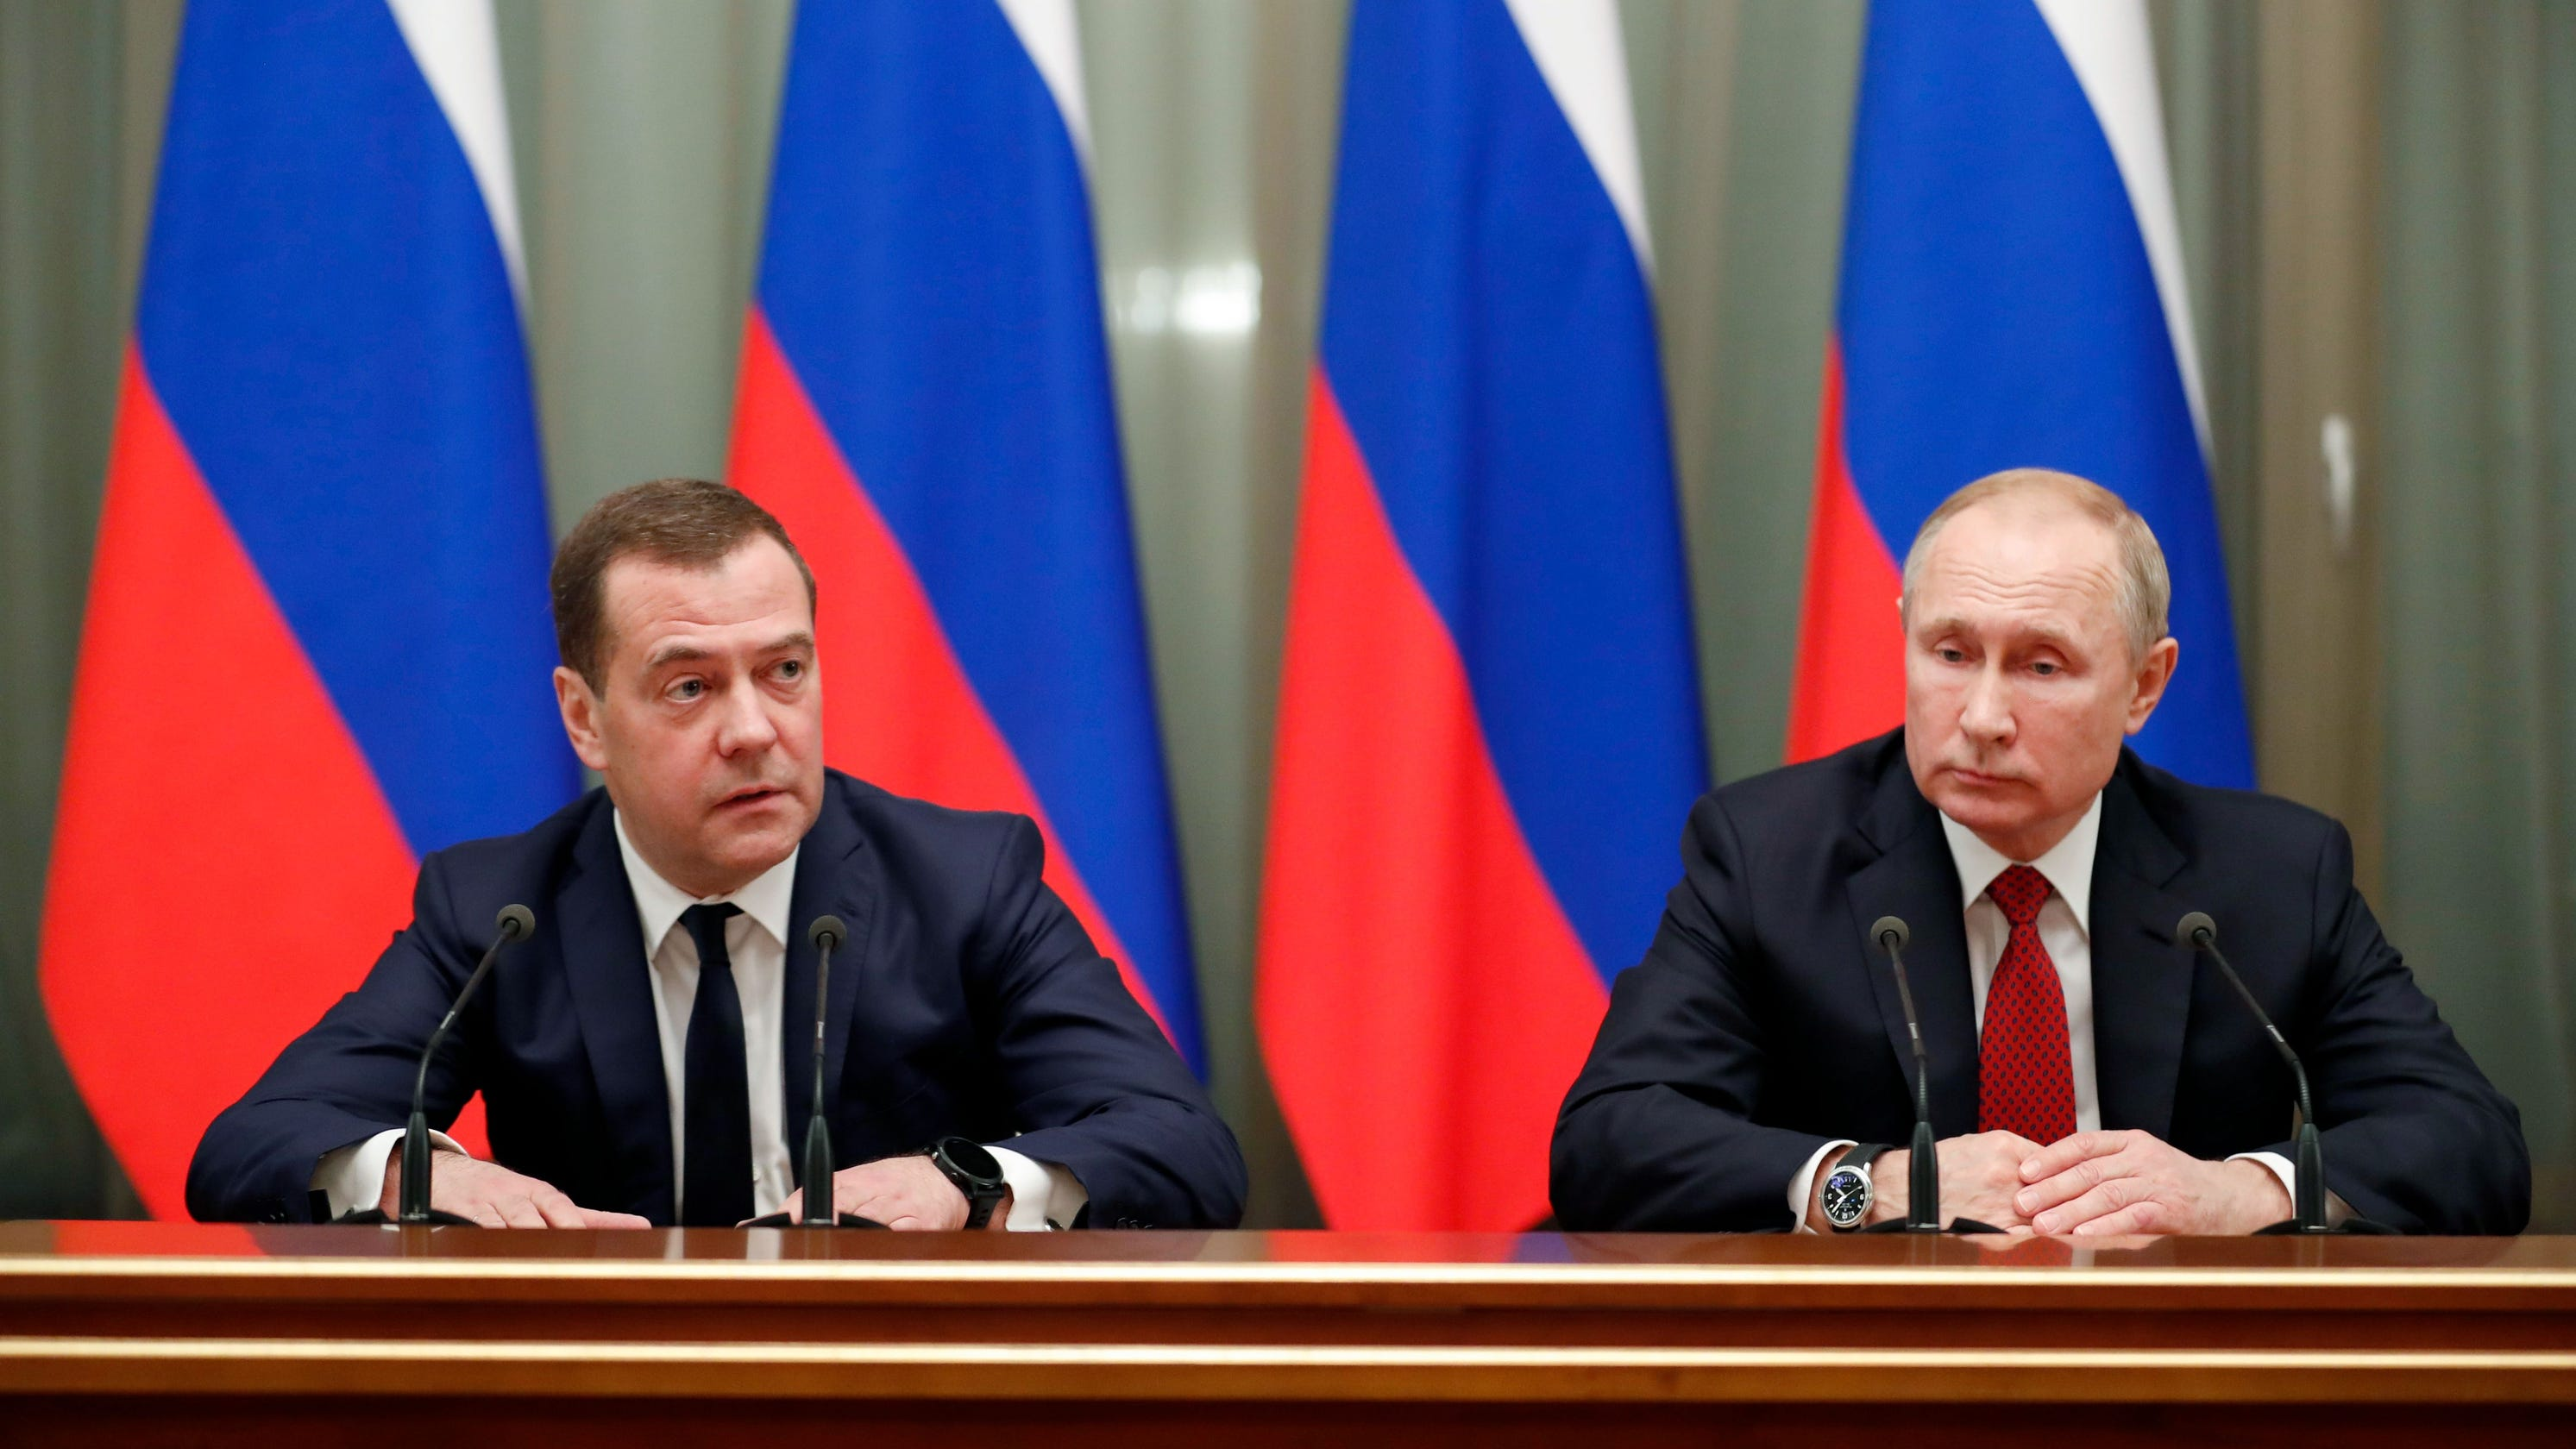 Dmitry Medvedev and Vladimir Putin